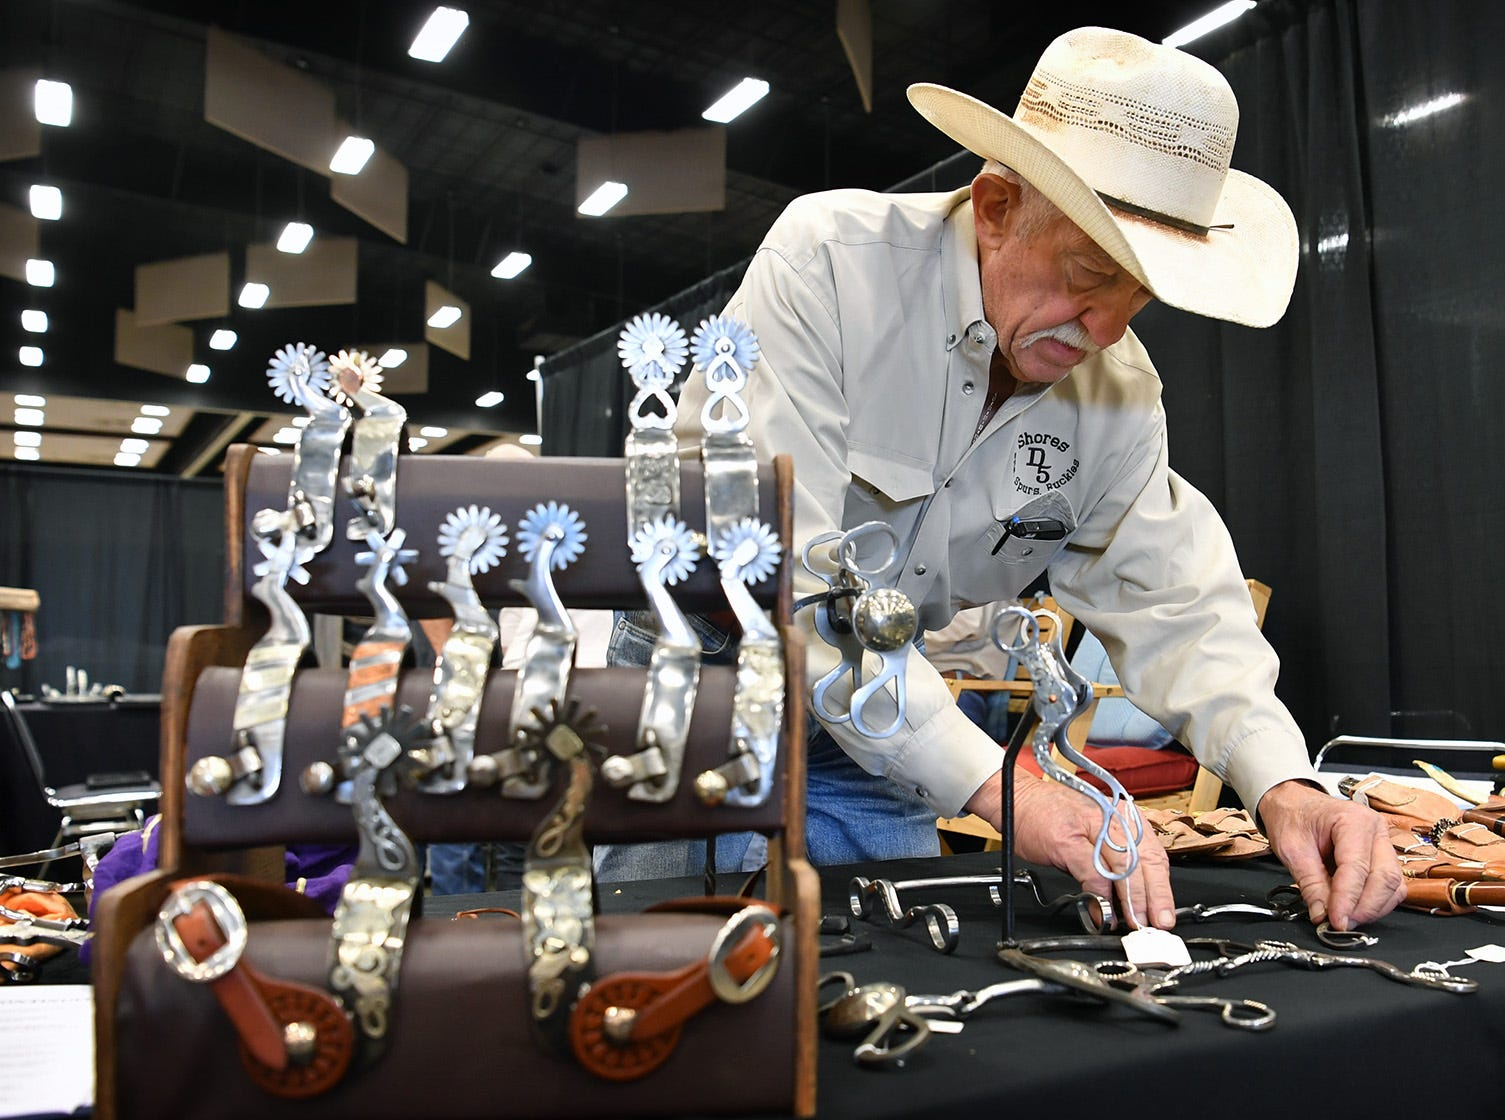 Dan Shores of D5 Metal Art lays out an arrangement of silver overlay bits and spurs for the Texas Ranch Roundup trade show Thursday morning at the Ray C;ymer Exhibit Hall.